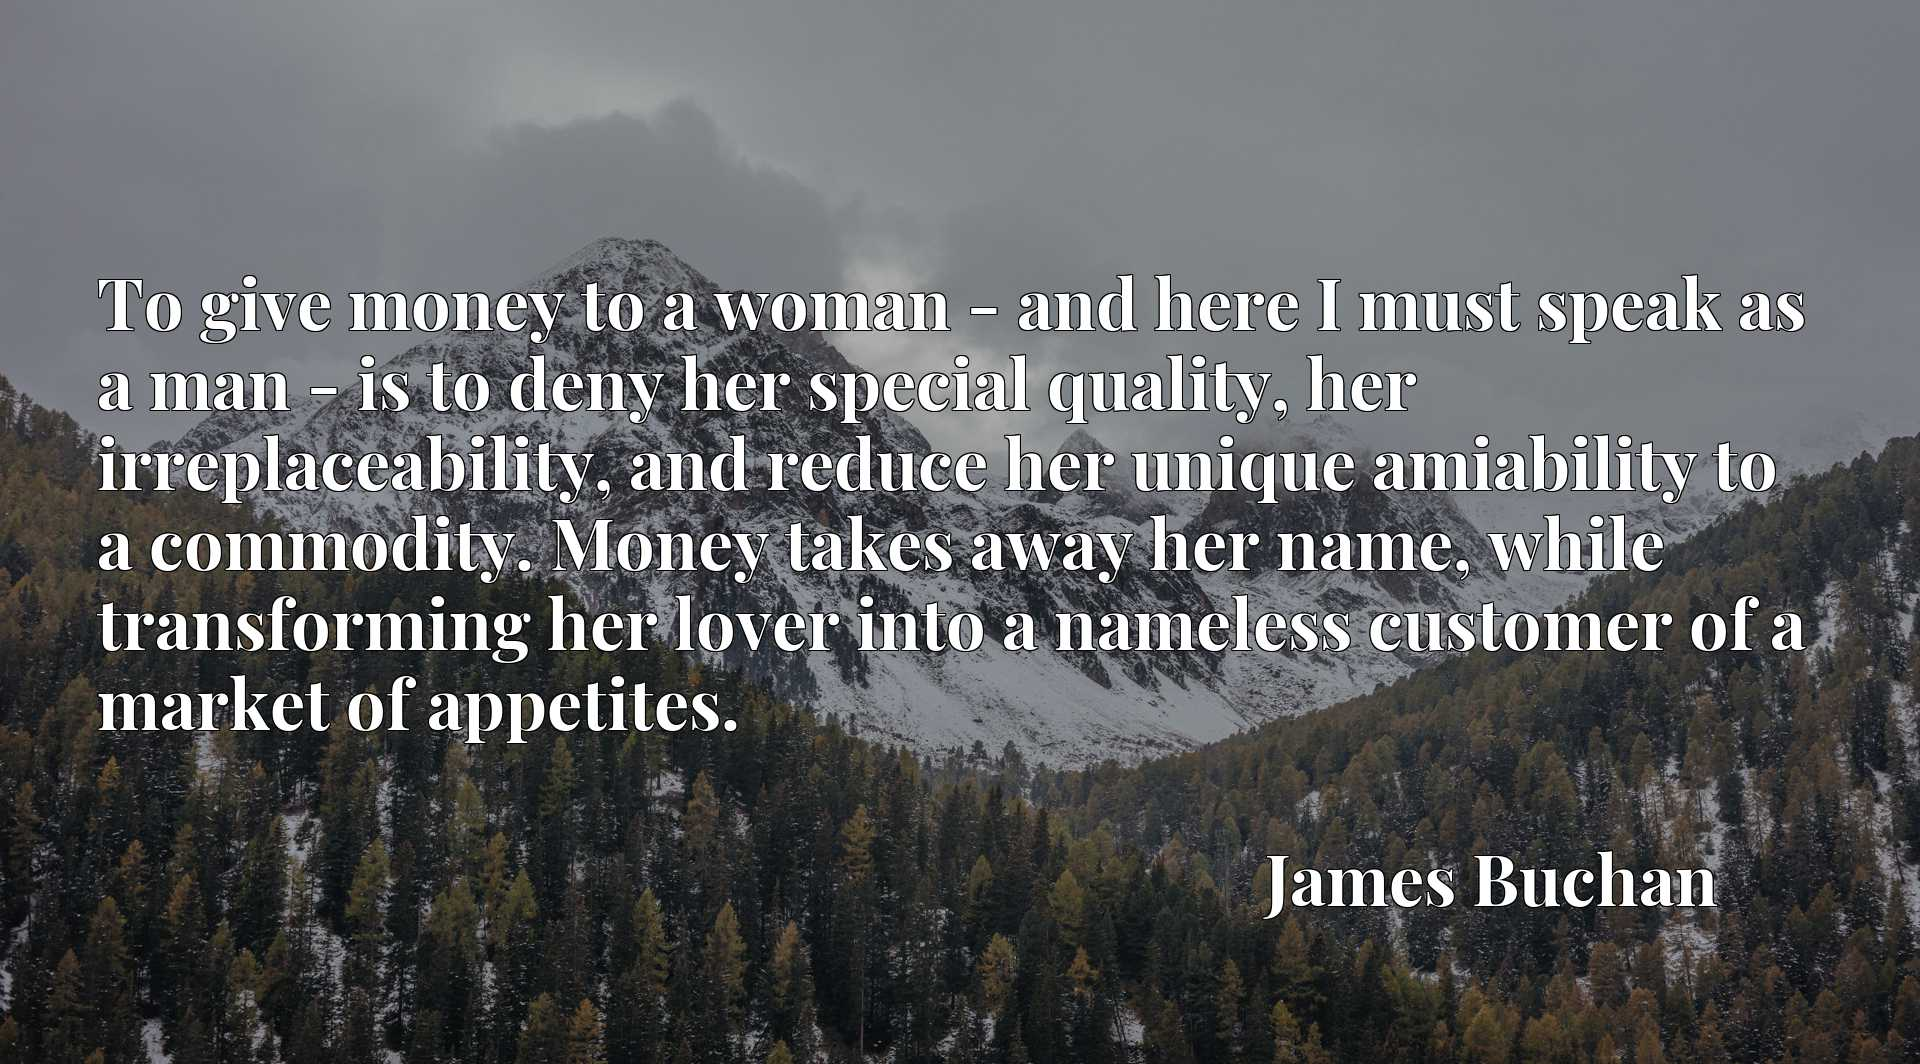 To give money to a woman - and here I must speak as a man - is to deny her special quality, her irreplaceability, and reduce her unique amiability to a commodity. Money takes away her name, while transforming her lover into a nameless customer of a market of appetites.